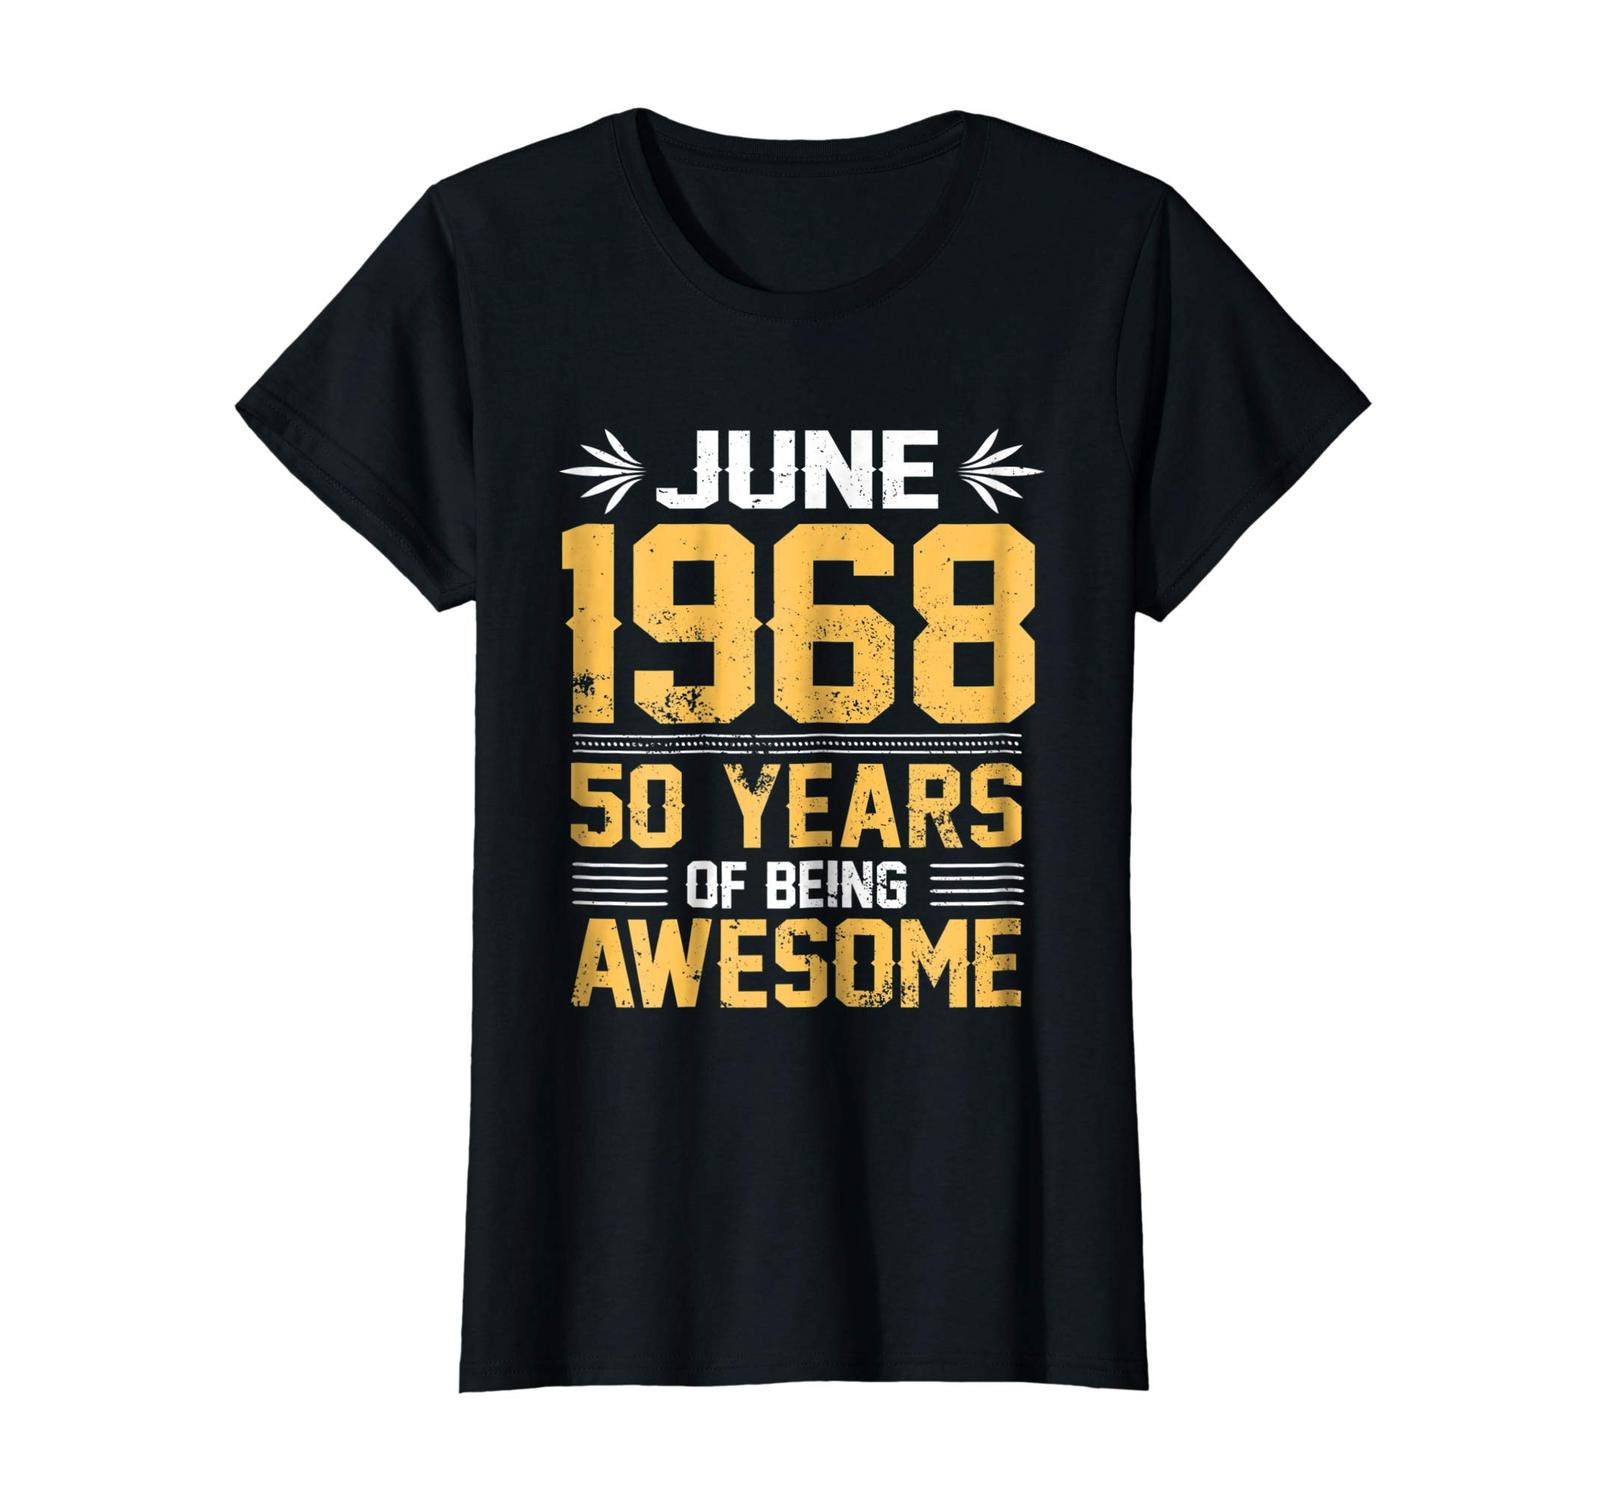 Uncle Shirts -   Legends Born In JUNE 1968 50 Yrs Years Old Being Awesome Wowen image 2